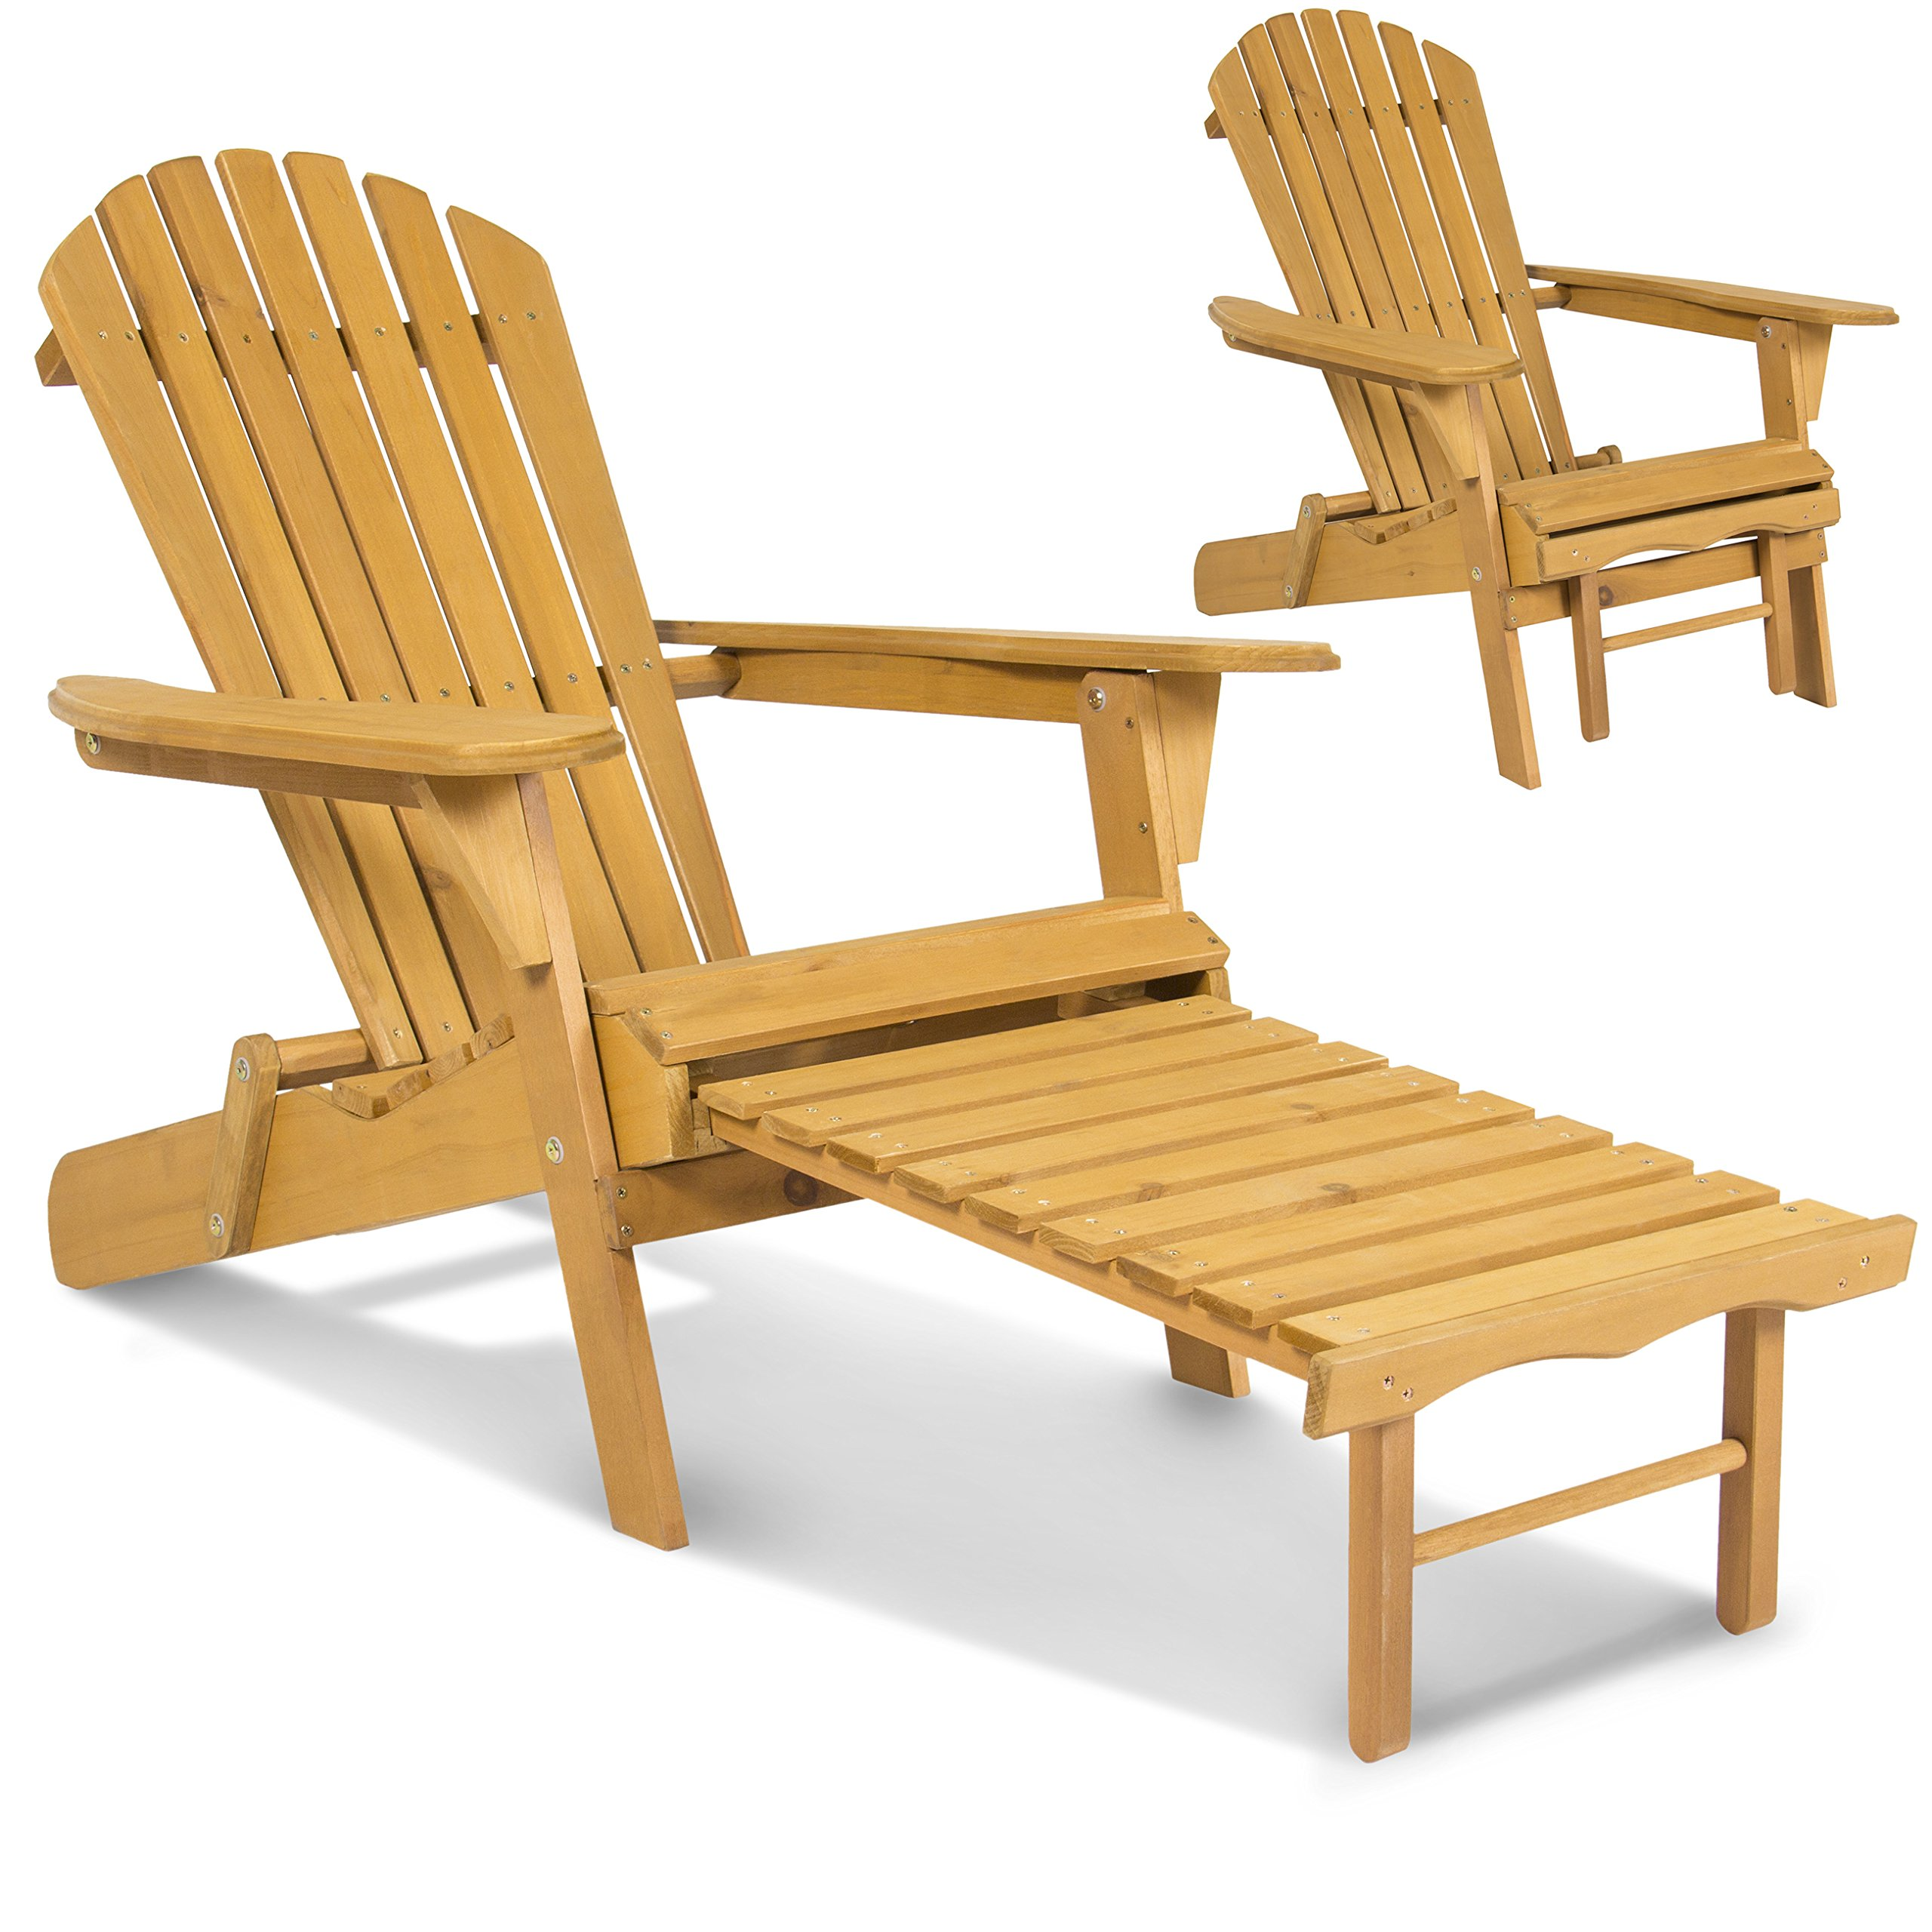 Best Choice Products Outdoor Wood Adirondack Chair Foldable w/Pull Out Ottoman Patio Deck Furniture by Best Choice Products